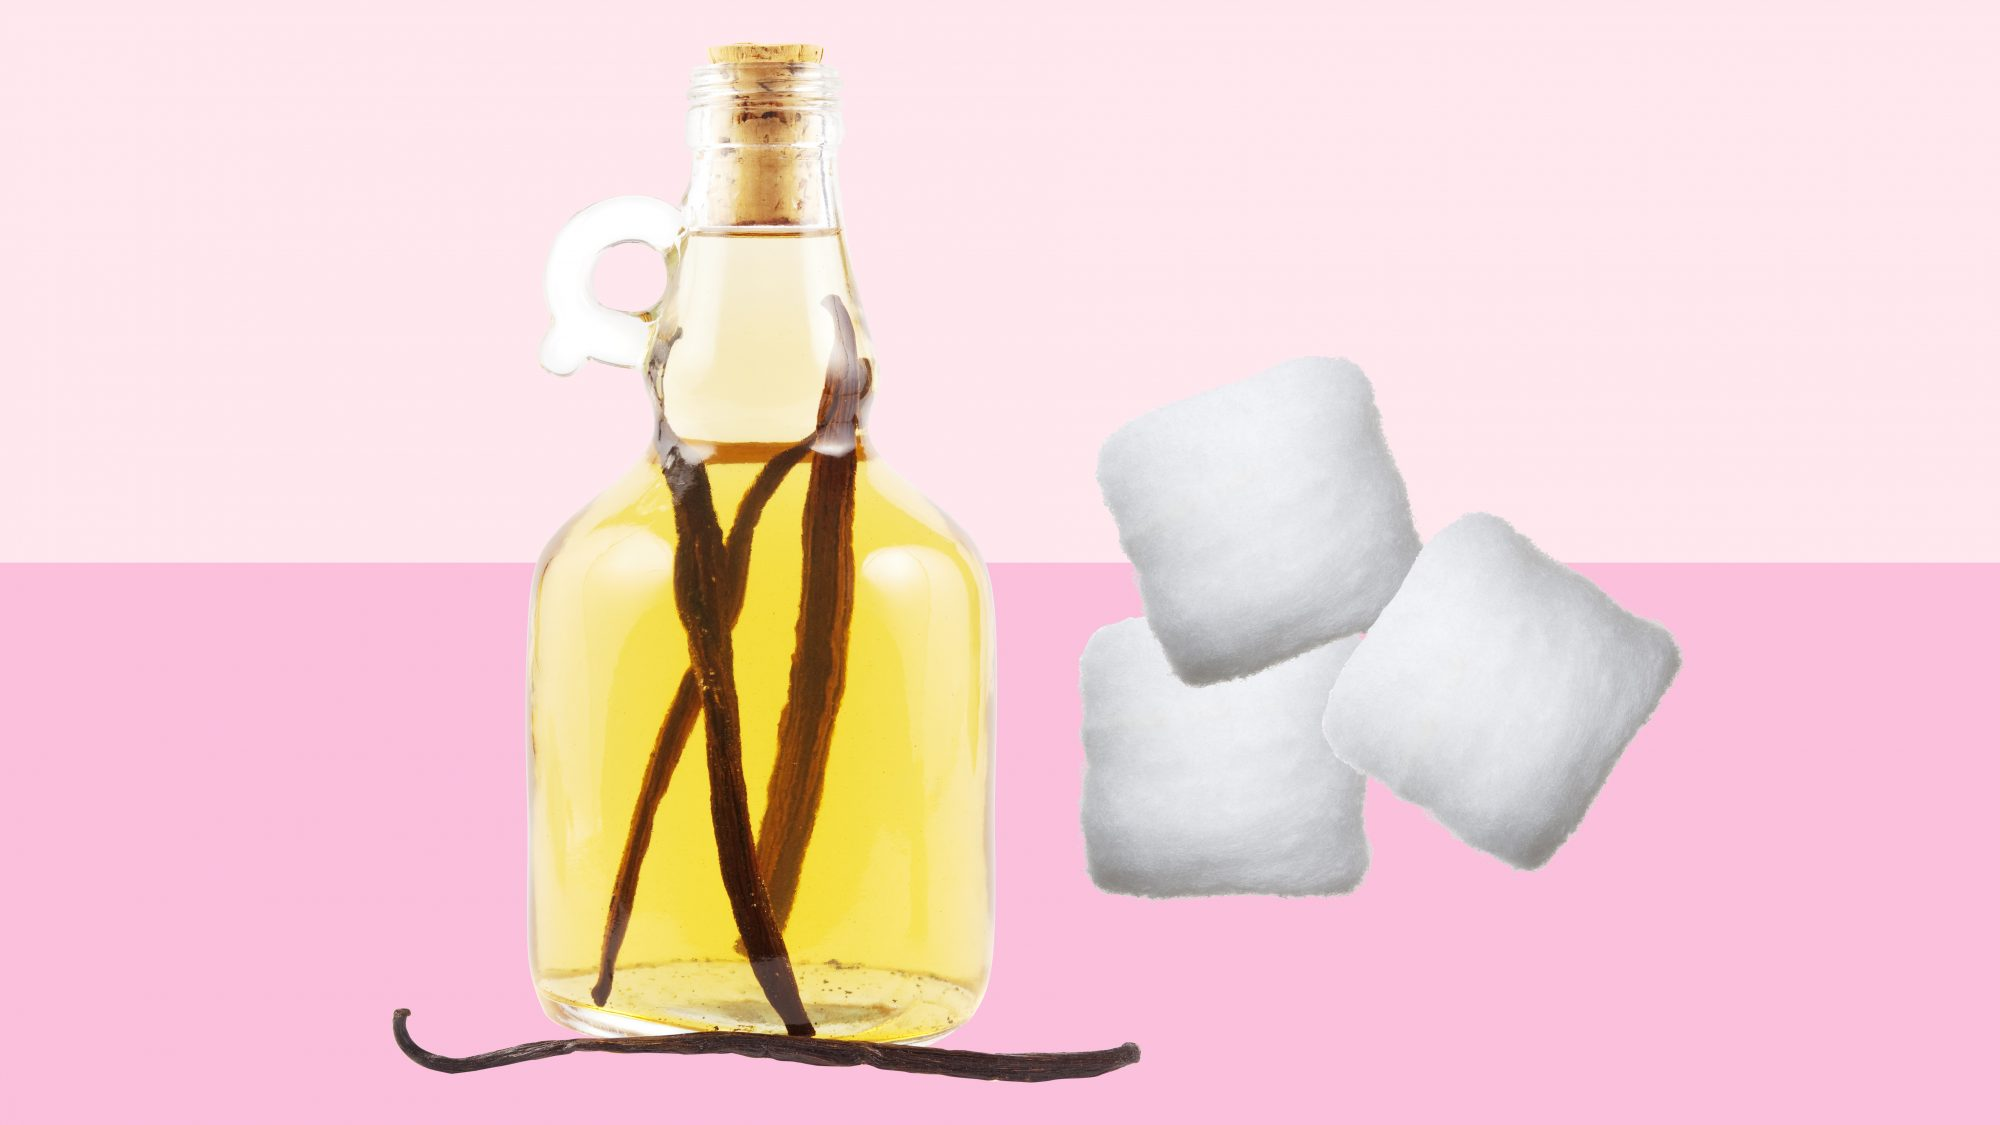 make home smell good, using vanilla and cotton ball